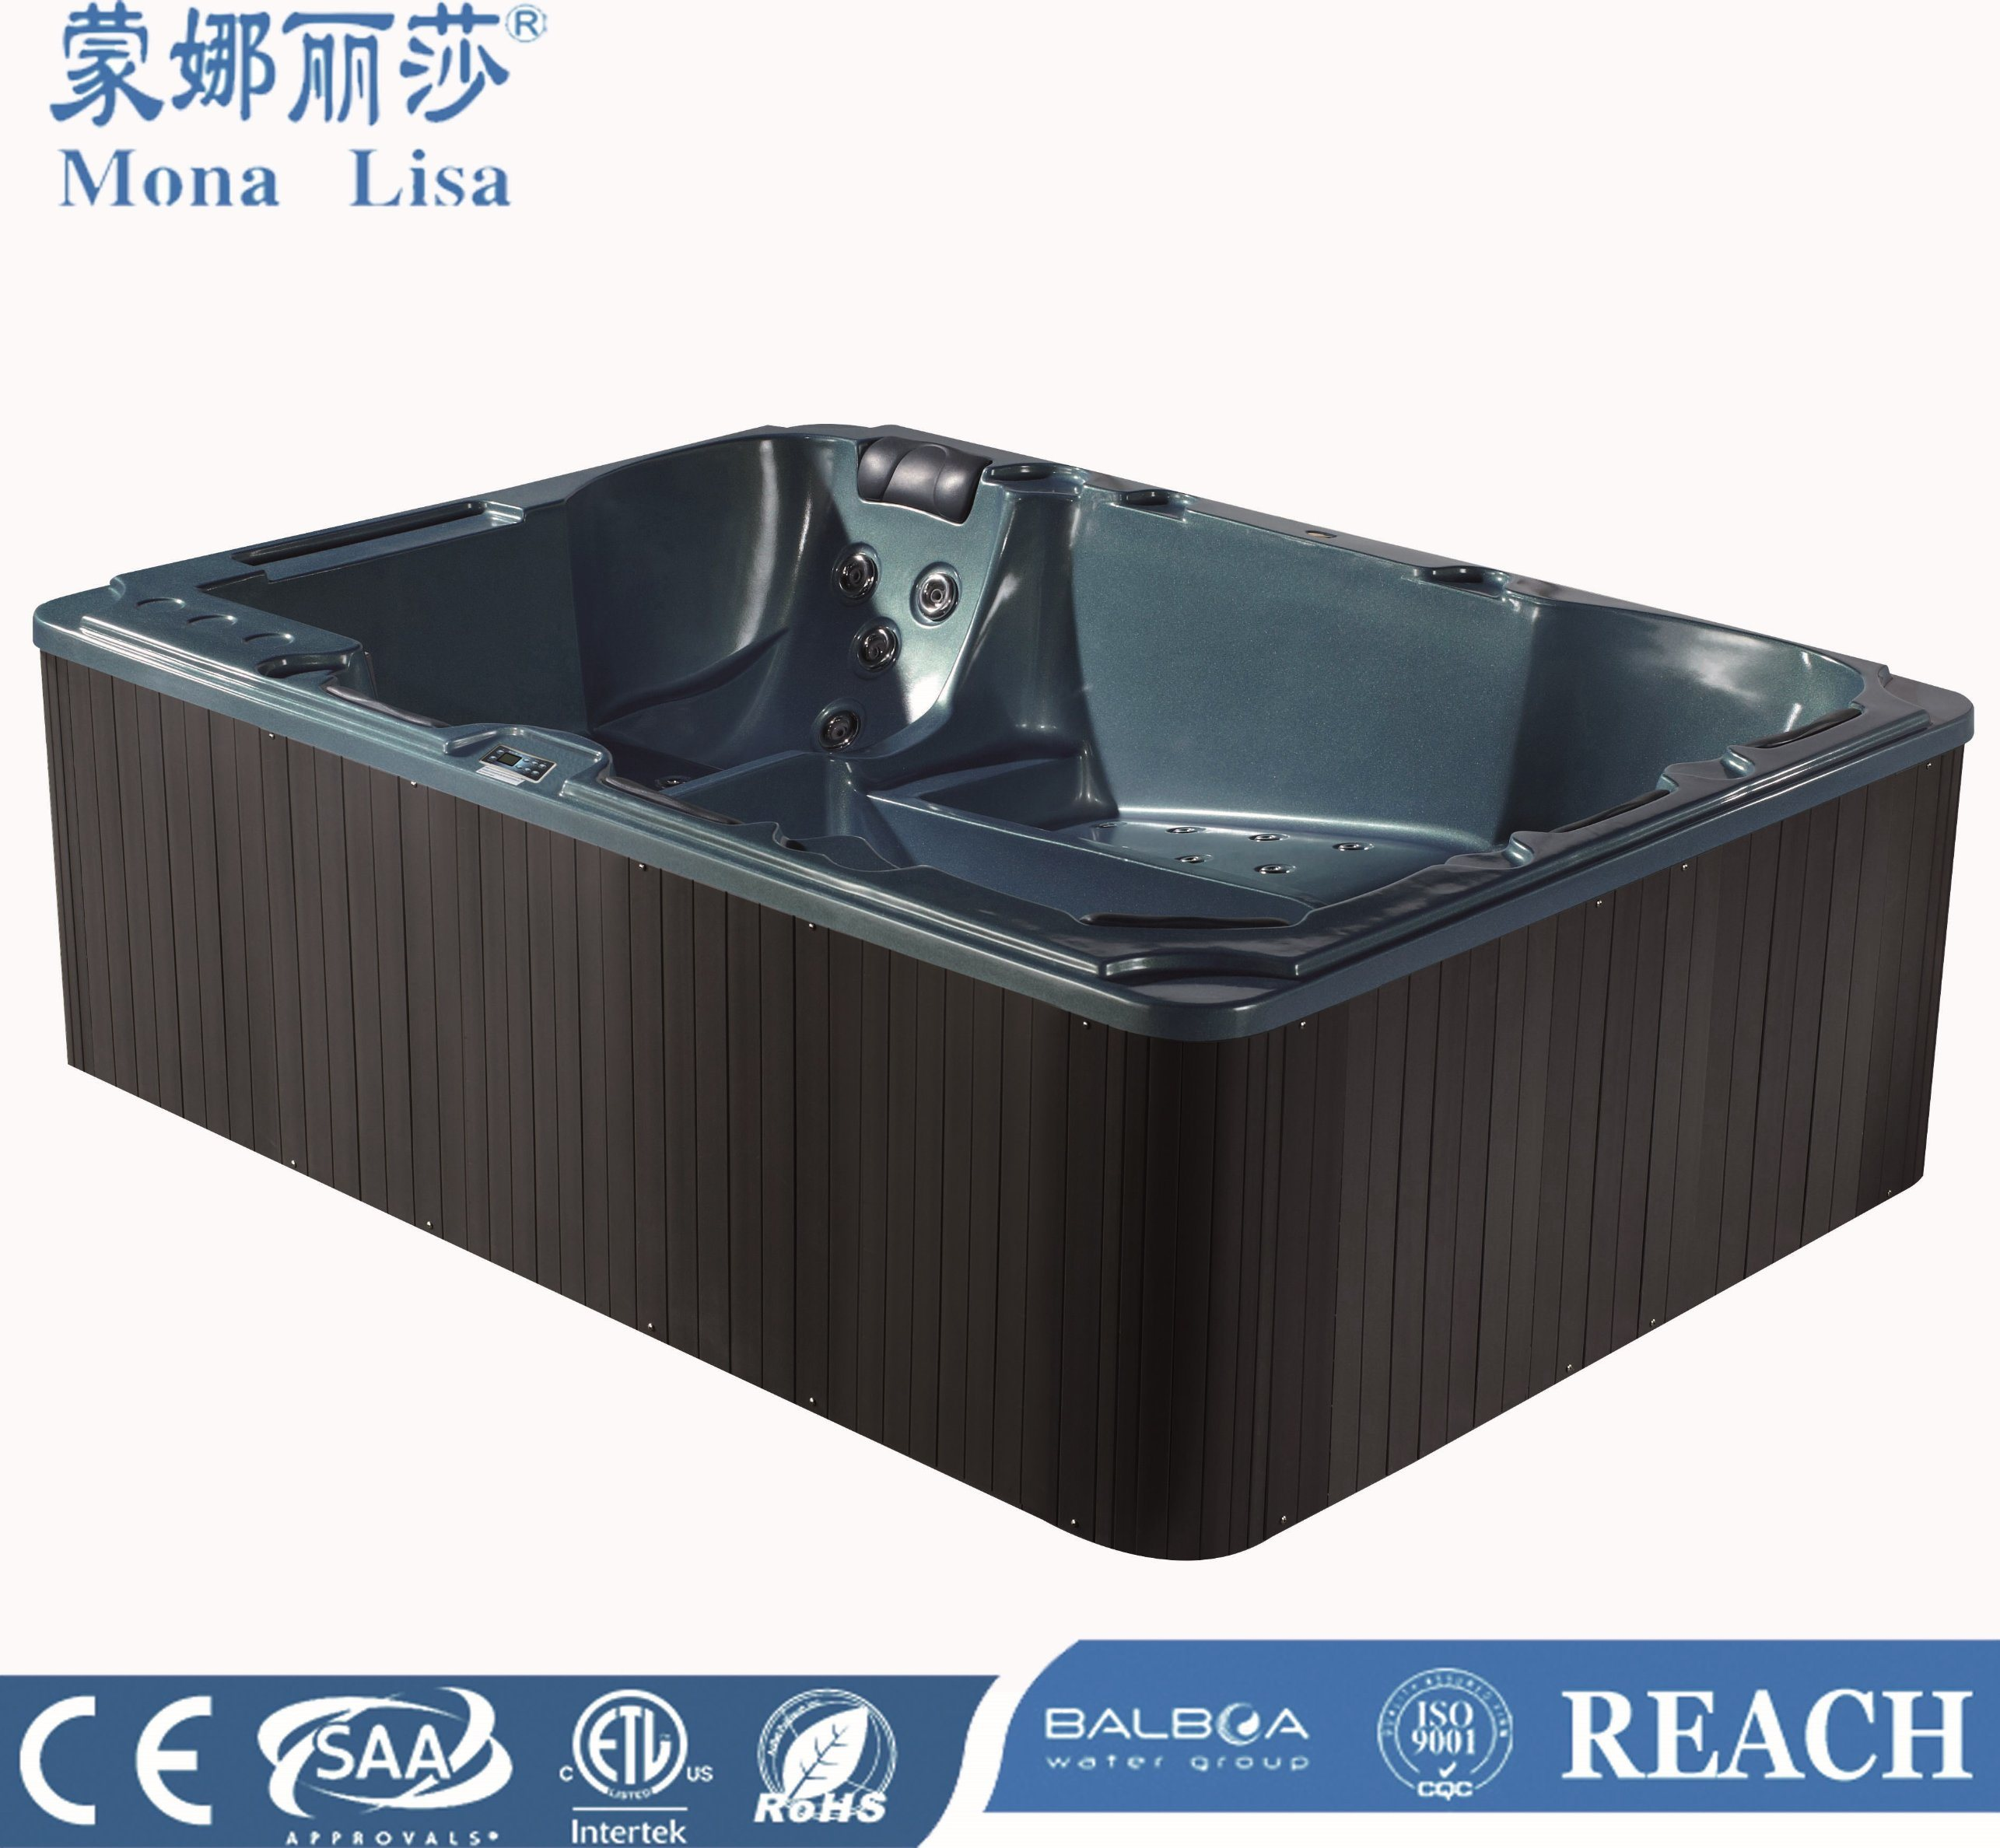 China Monalisa Family Use SPA Hot Tub with Balboa Control (M-3365 ...